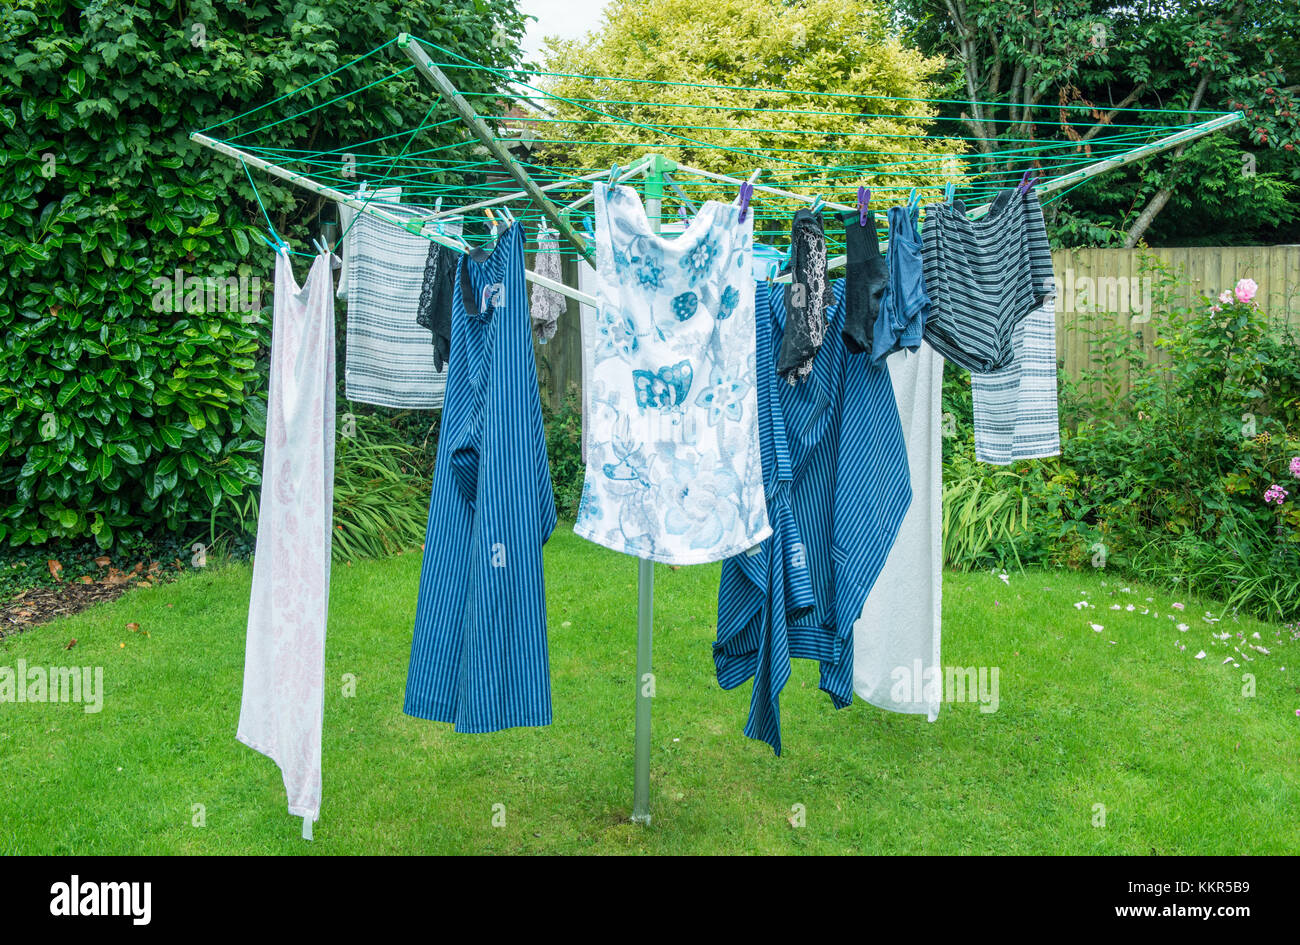 Clothes hanging on the clothes line owned by photographer - Stock Image